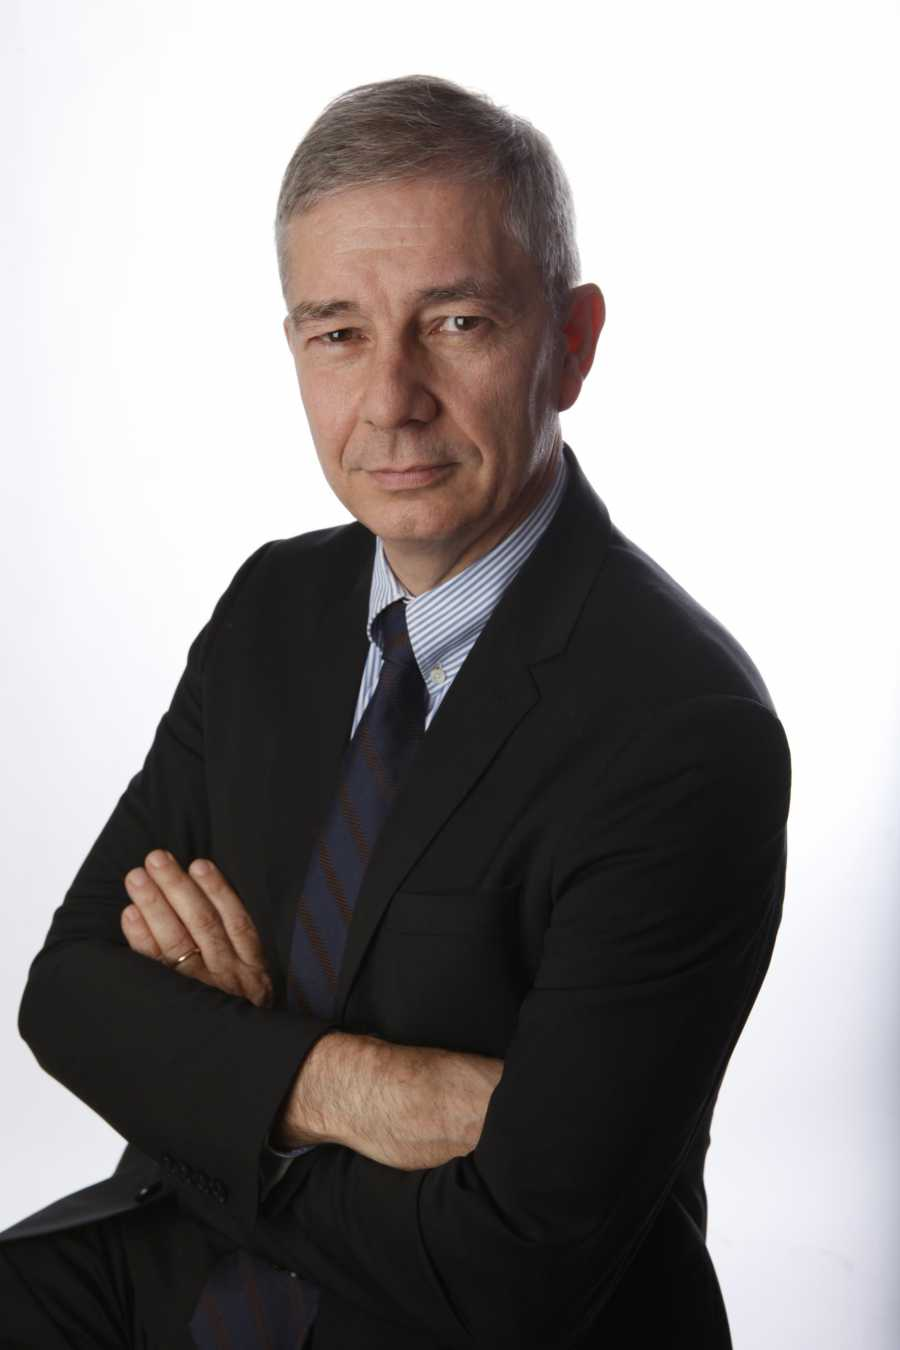 Portrait F.Laporte President and CEO. Formerly founder, president and CEO of Jipelec and has 25 years background in development of Rapid Thermal Processing and Chemical Vapor Deposition systems.